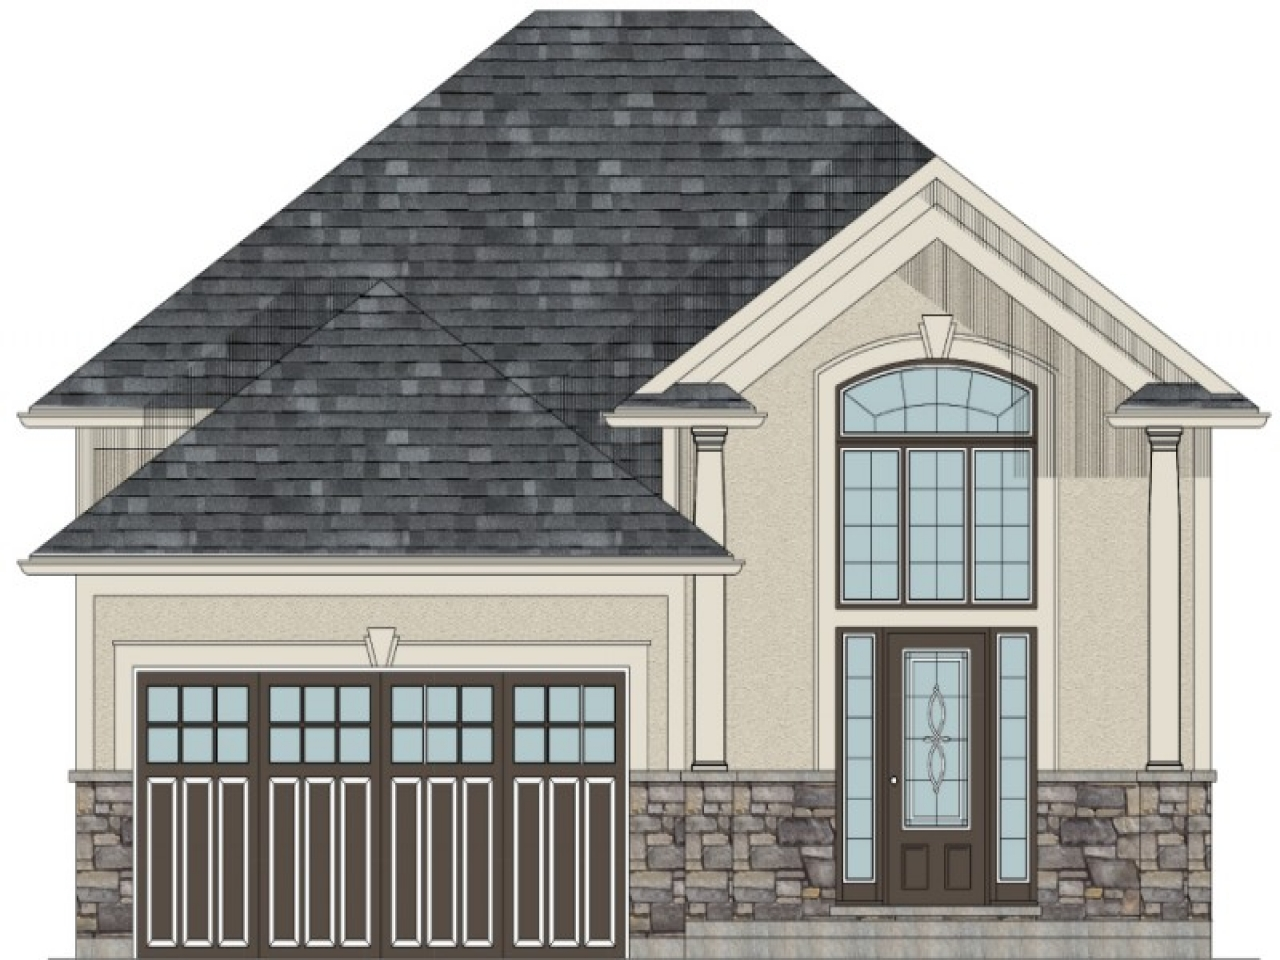 Bungalow House Plans With Attached Garage Bungalow House Plans With Garage Raised Bungalow